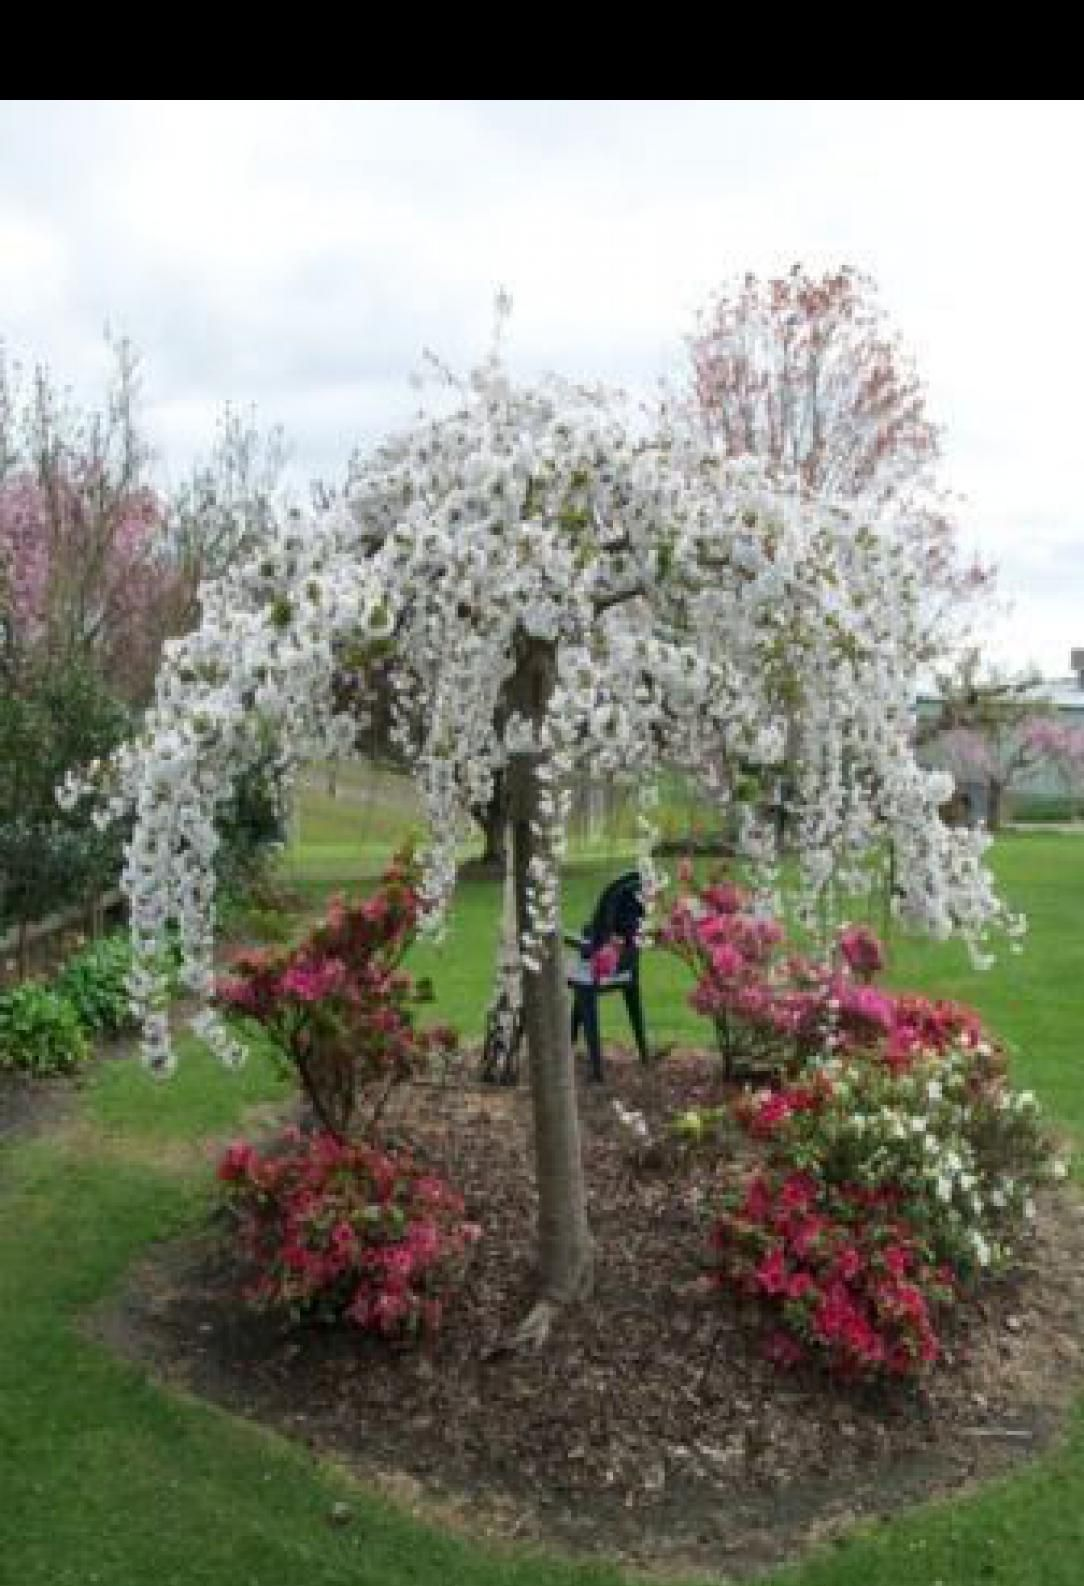 I M Thinking About Planting A Weeping Cherry Tree In Our New Front Yard Weeping Cherry Tree Cherry Tree Cherry Blossom Tree